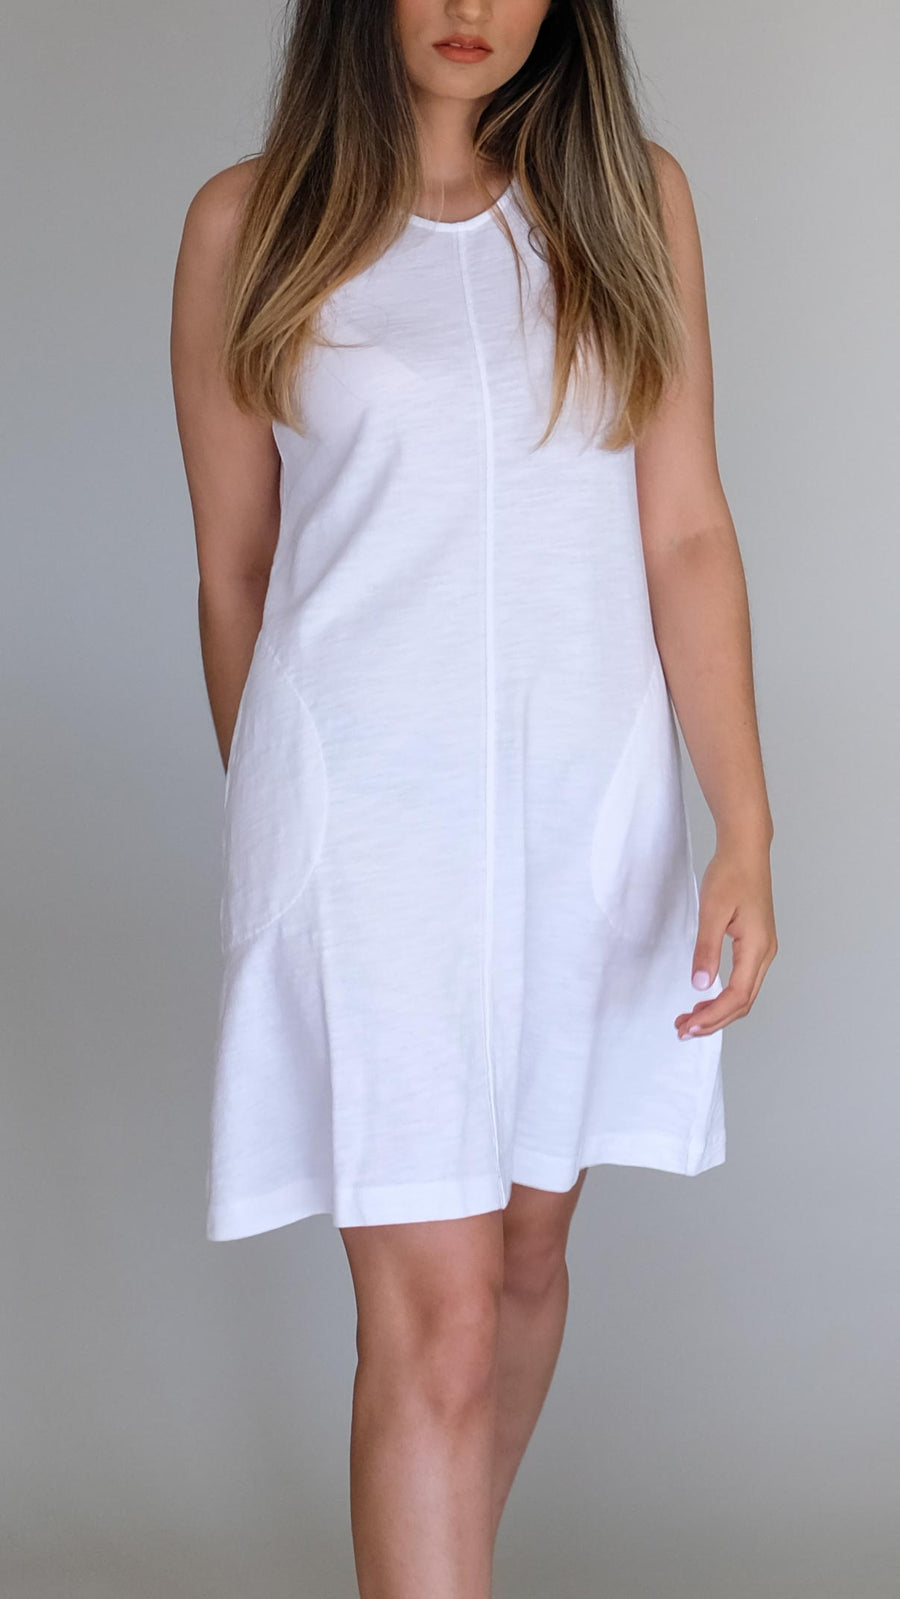 White A-Line Dress by Nation LTD